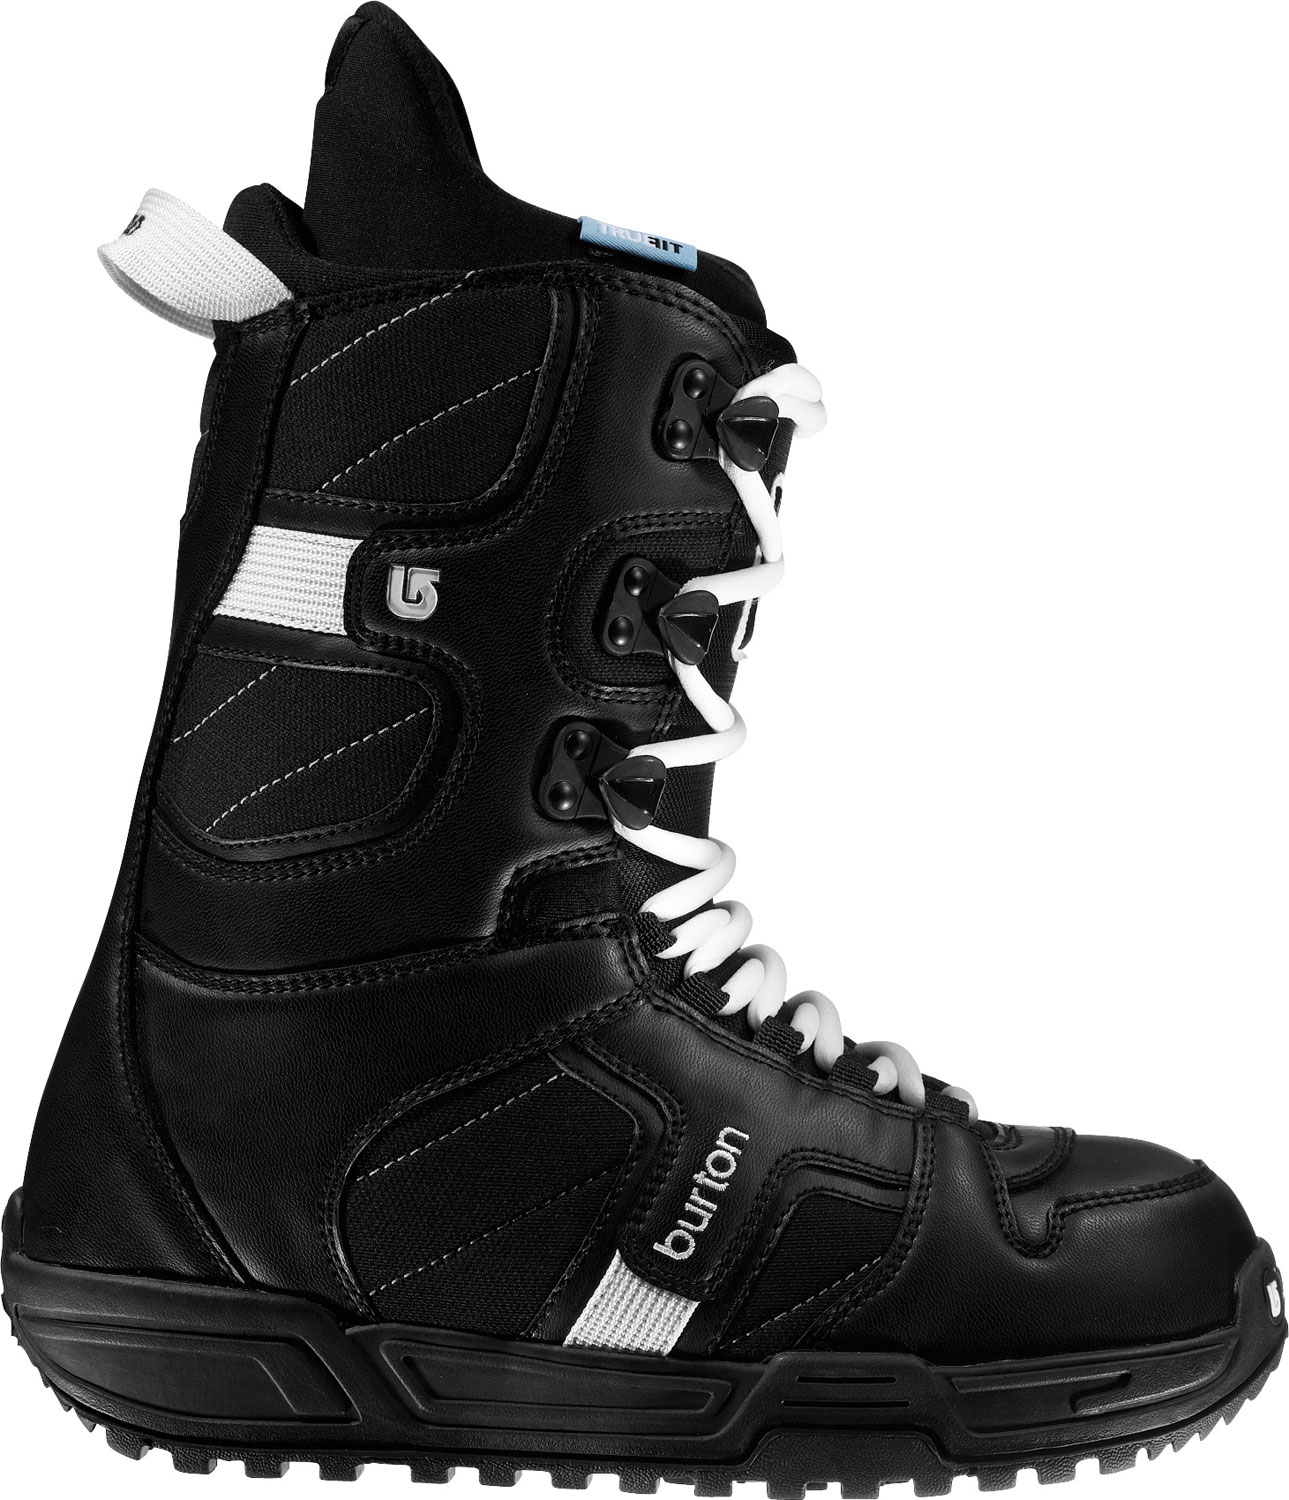 Snowboard Falling leaf to frontside air, this boot will get you there. Your first boot should be one that takes on all terrain; one that likes learning new tricks and riding right through lunch. You will settle for nothing less than a custom fit liner, cloud-like cushioning, and women's-specific fit. You want the flex to be soft for flying, yet supportive for landing. If you are looking to get it all in a boot that will perform as you progress, look no further than the Coco.Key Features of The Burton Coco Women's Snowboard Boots: Lacing: Traditional Liner: Imprint Liner with True Fit Design Cushioning: 2-Part Outsole with EVA Cushioning and Rubber Ice Spikes Flex and Response: Soft Flex Thin Profile 3D Molded Tongue Comfort: Level 1 Molded EVA Footbed Support: 2 - $69.95